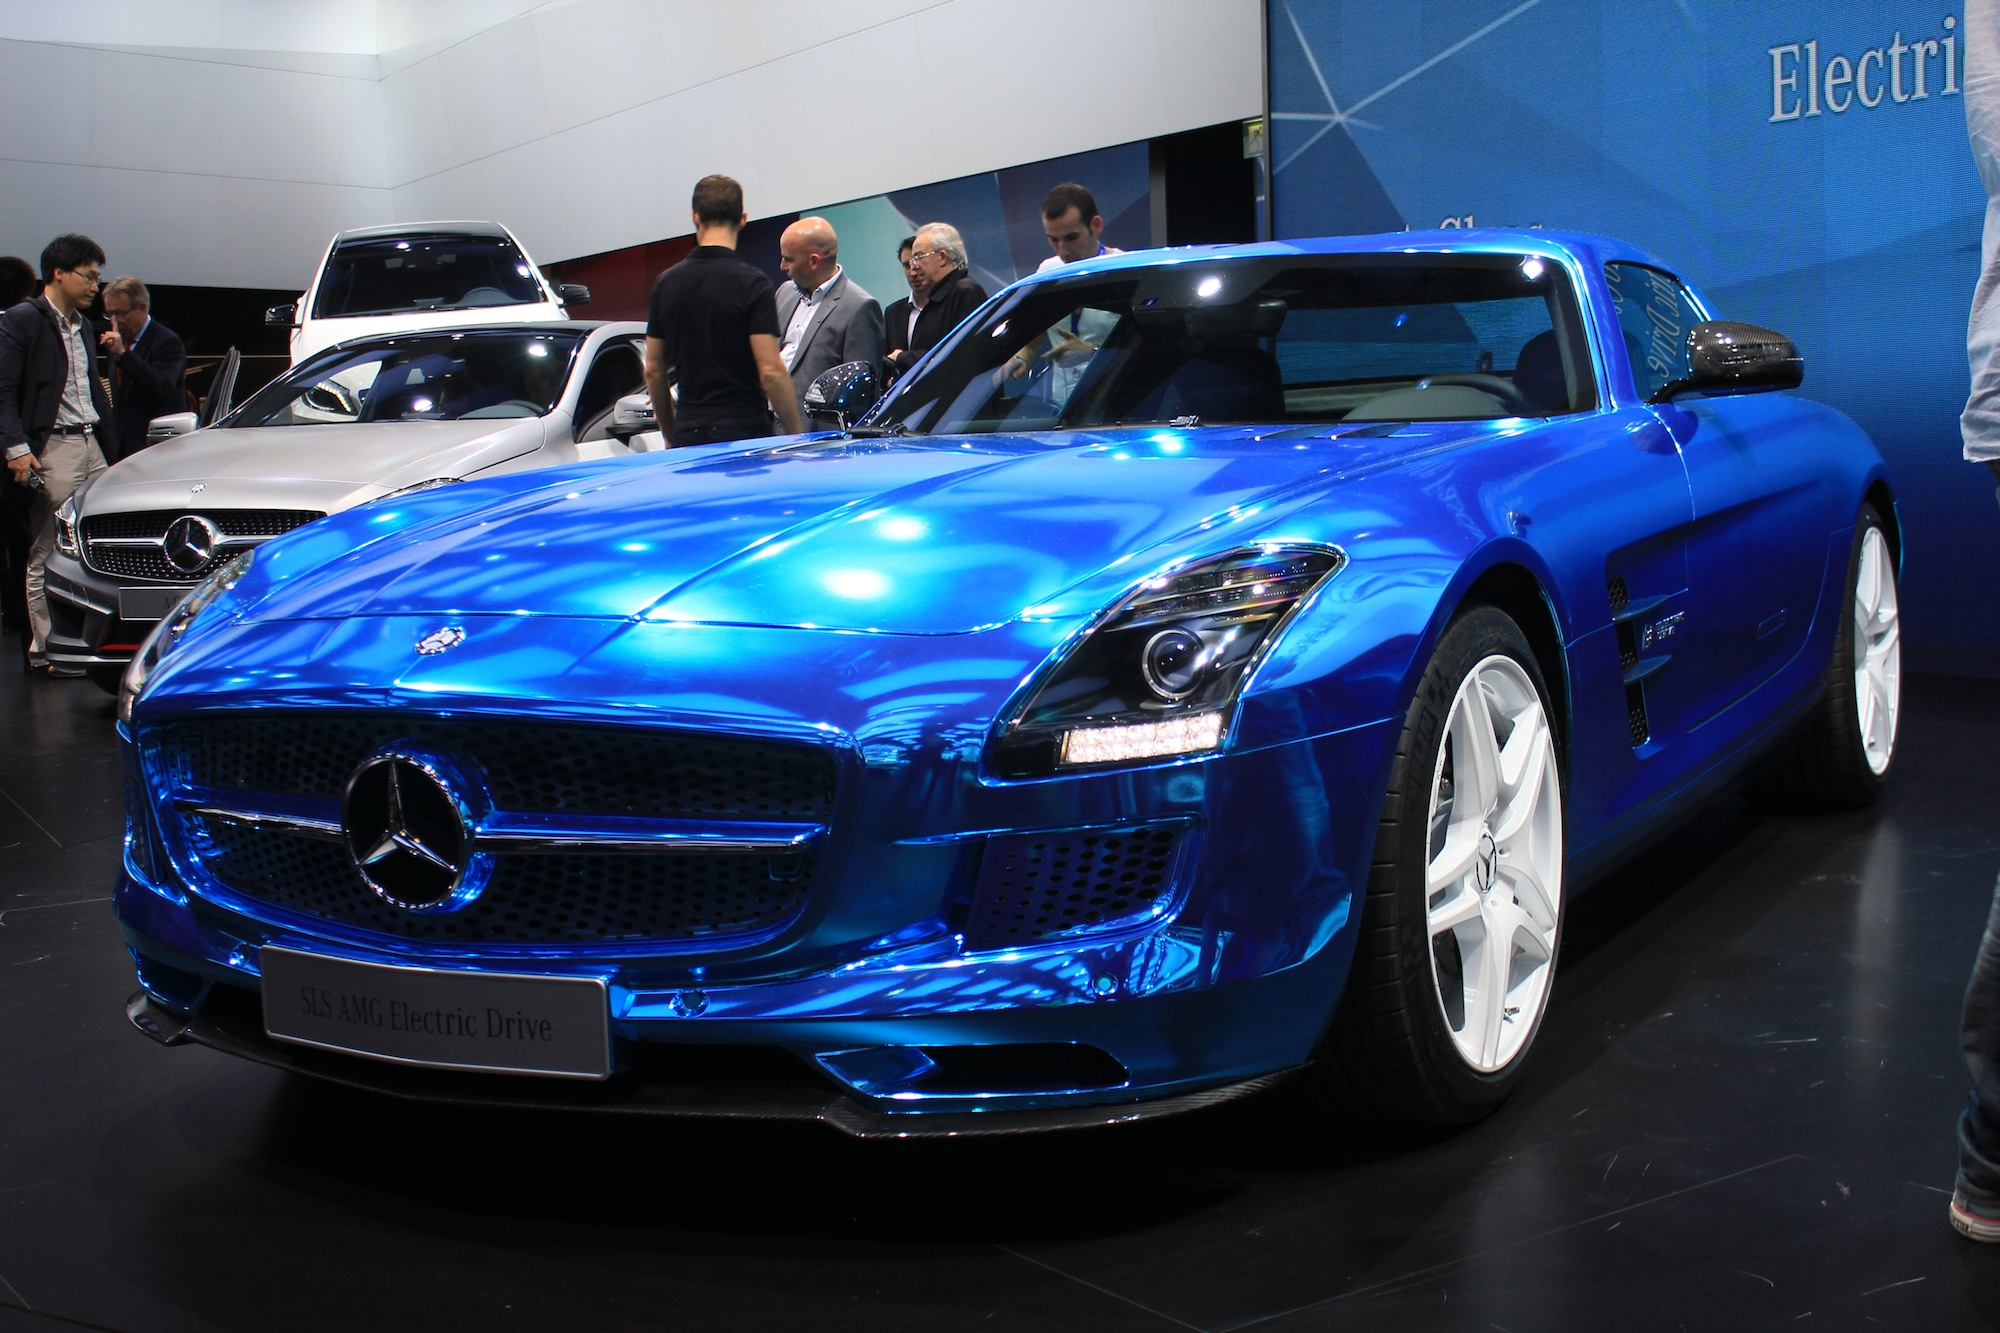 Mercedes Benz Sls Amg Electric Drive Live Photos 2012